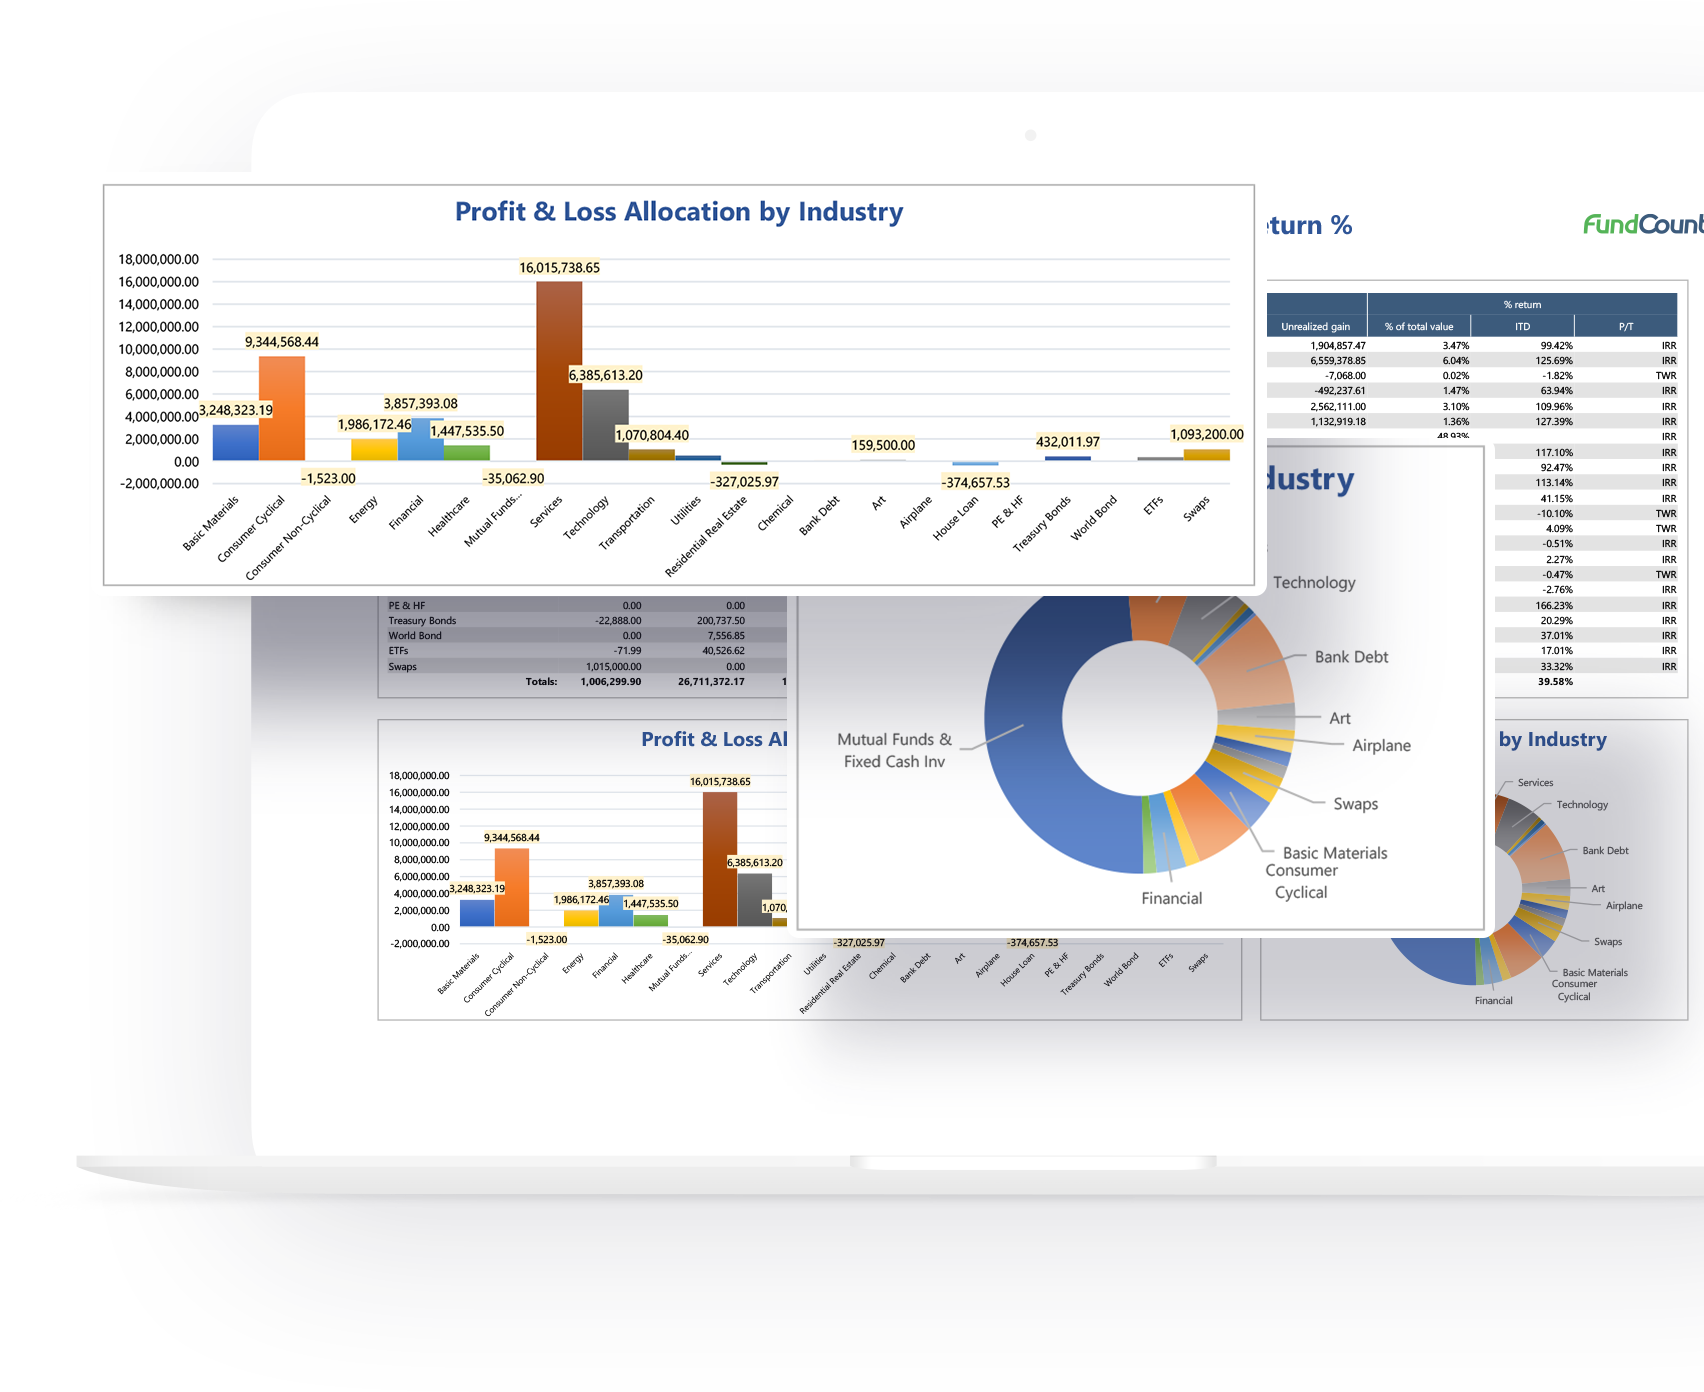 Hedge Fund accounting software doesn't need to be complicated. Get simplicity, efficiency and accuracy in one fully integrated accounting and reporting solution. Spend more time investing and less time with manual operations.